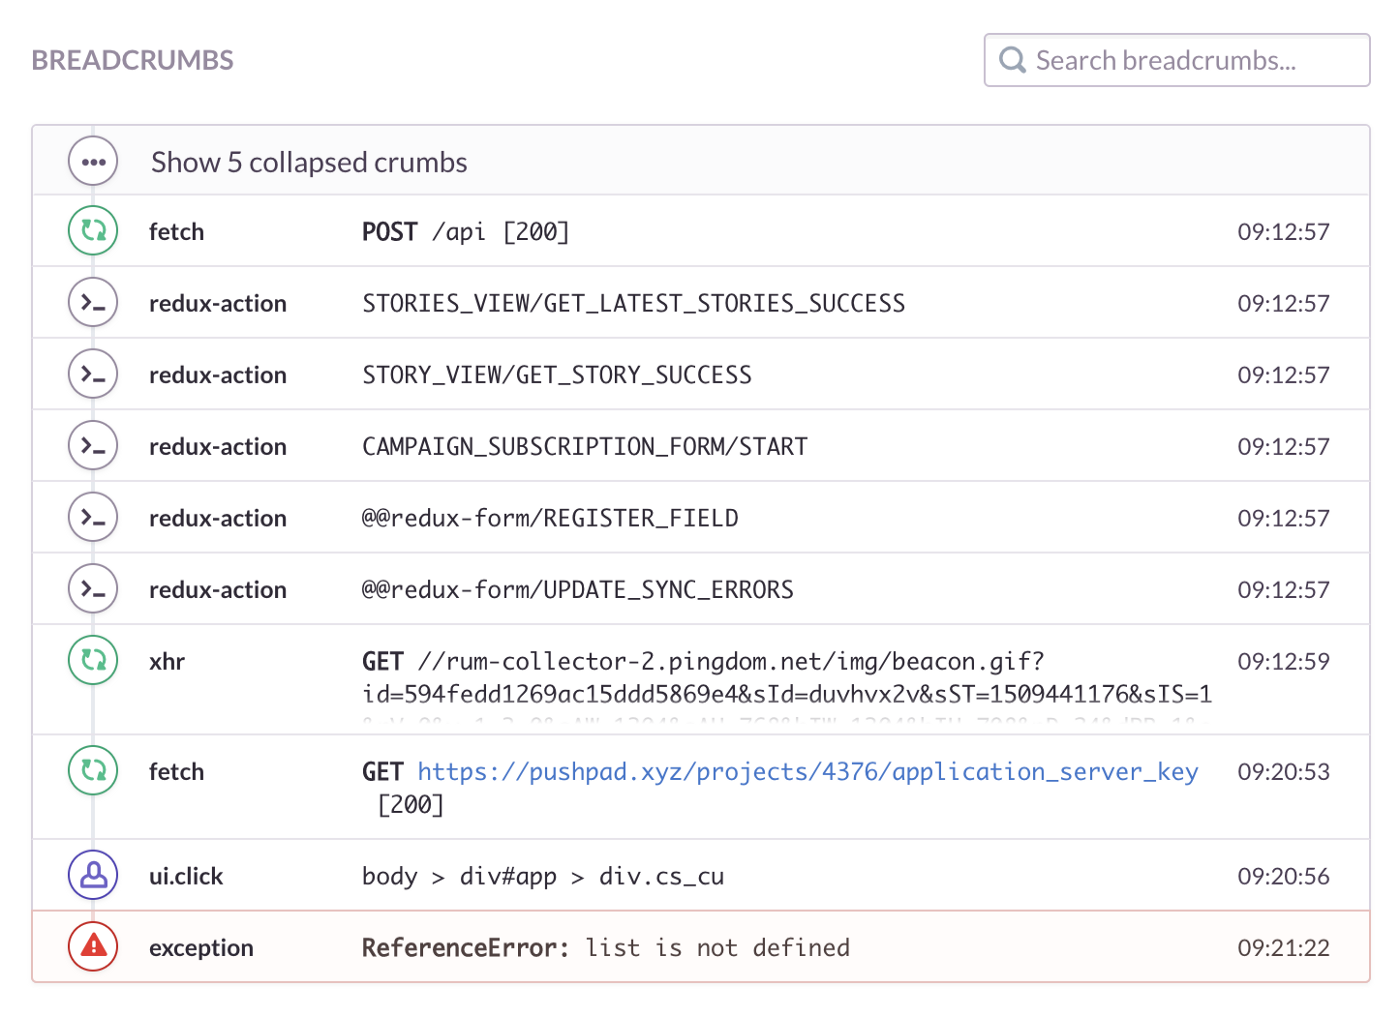 I have been doing web app error tracking and debugging wrong all